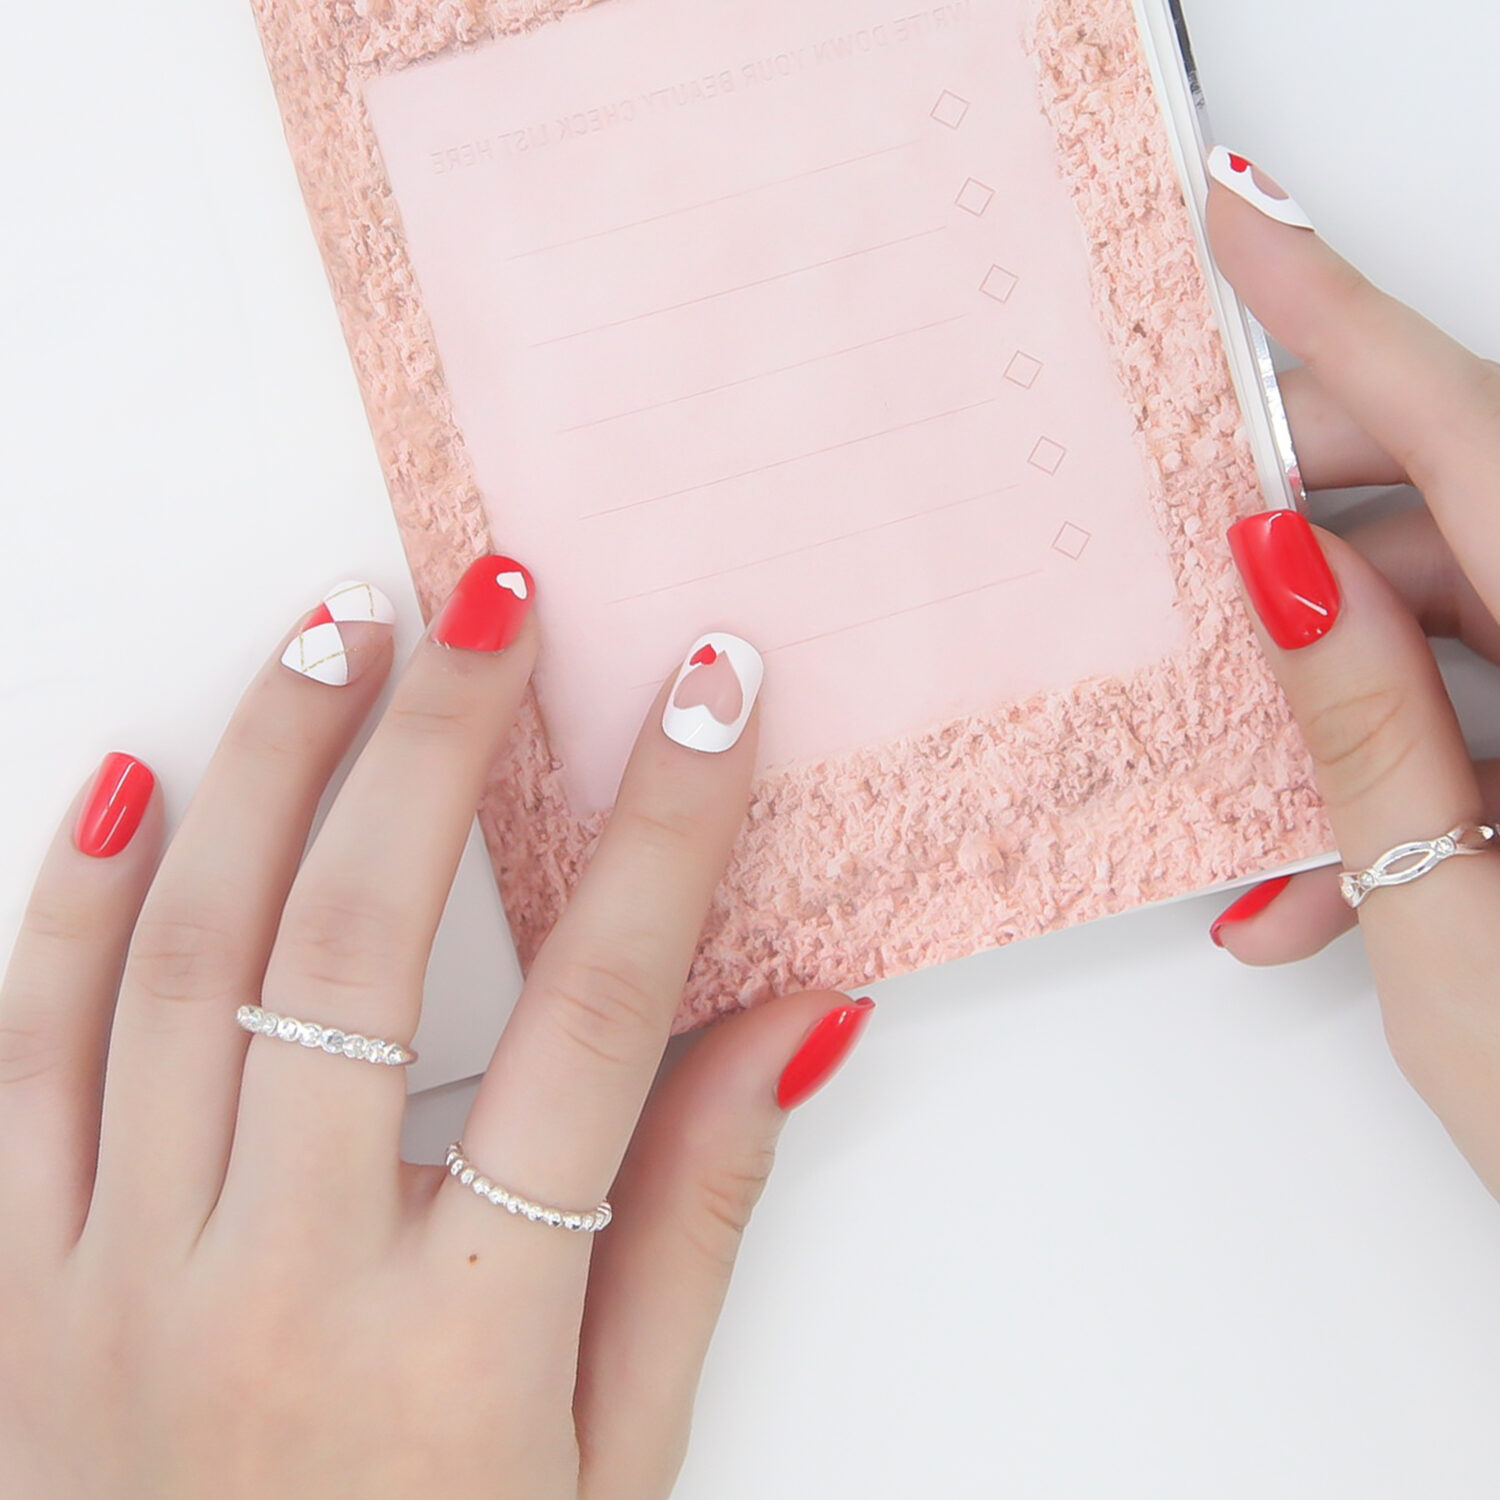 XOXO red and white heart Stick On Nails on hand. Fake Nails, Press On Nails, Artificial Nails, Nail Tips, DIY Manicure, MUSE & Co.